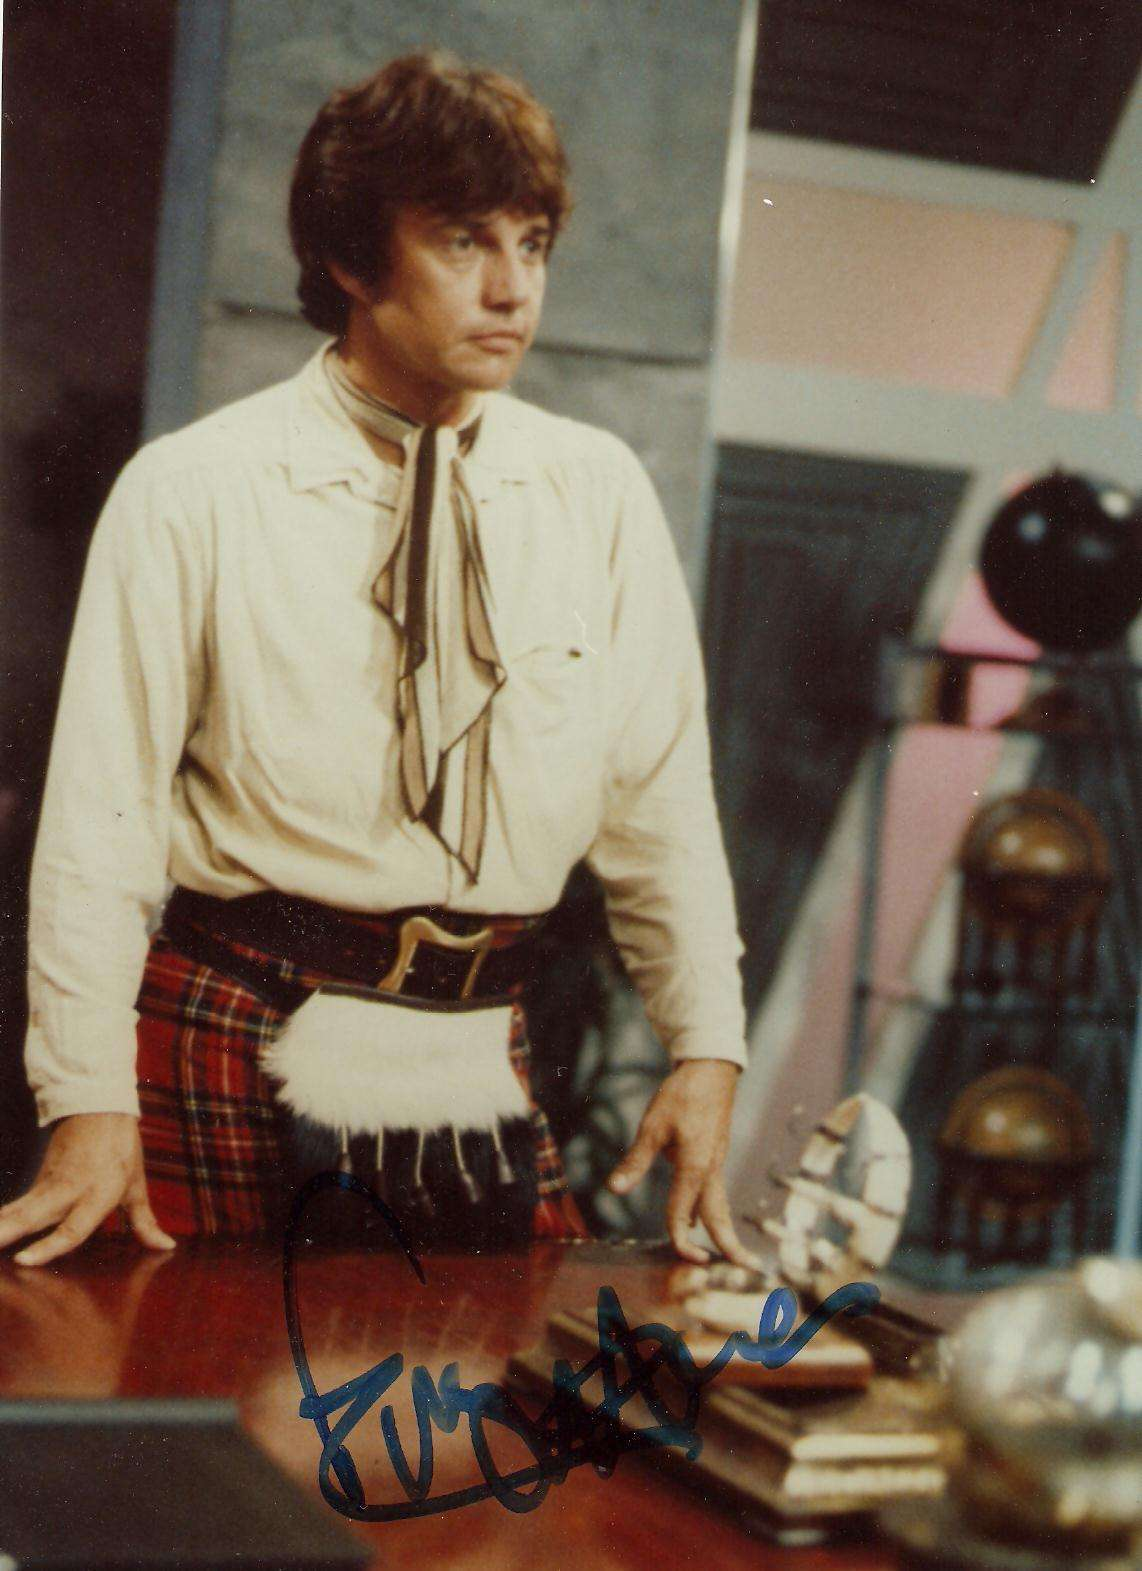 Frazer Hines in the Doctor Who